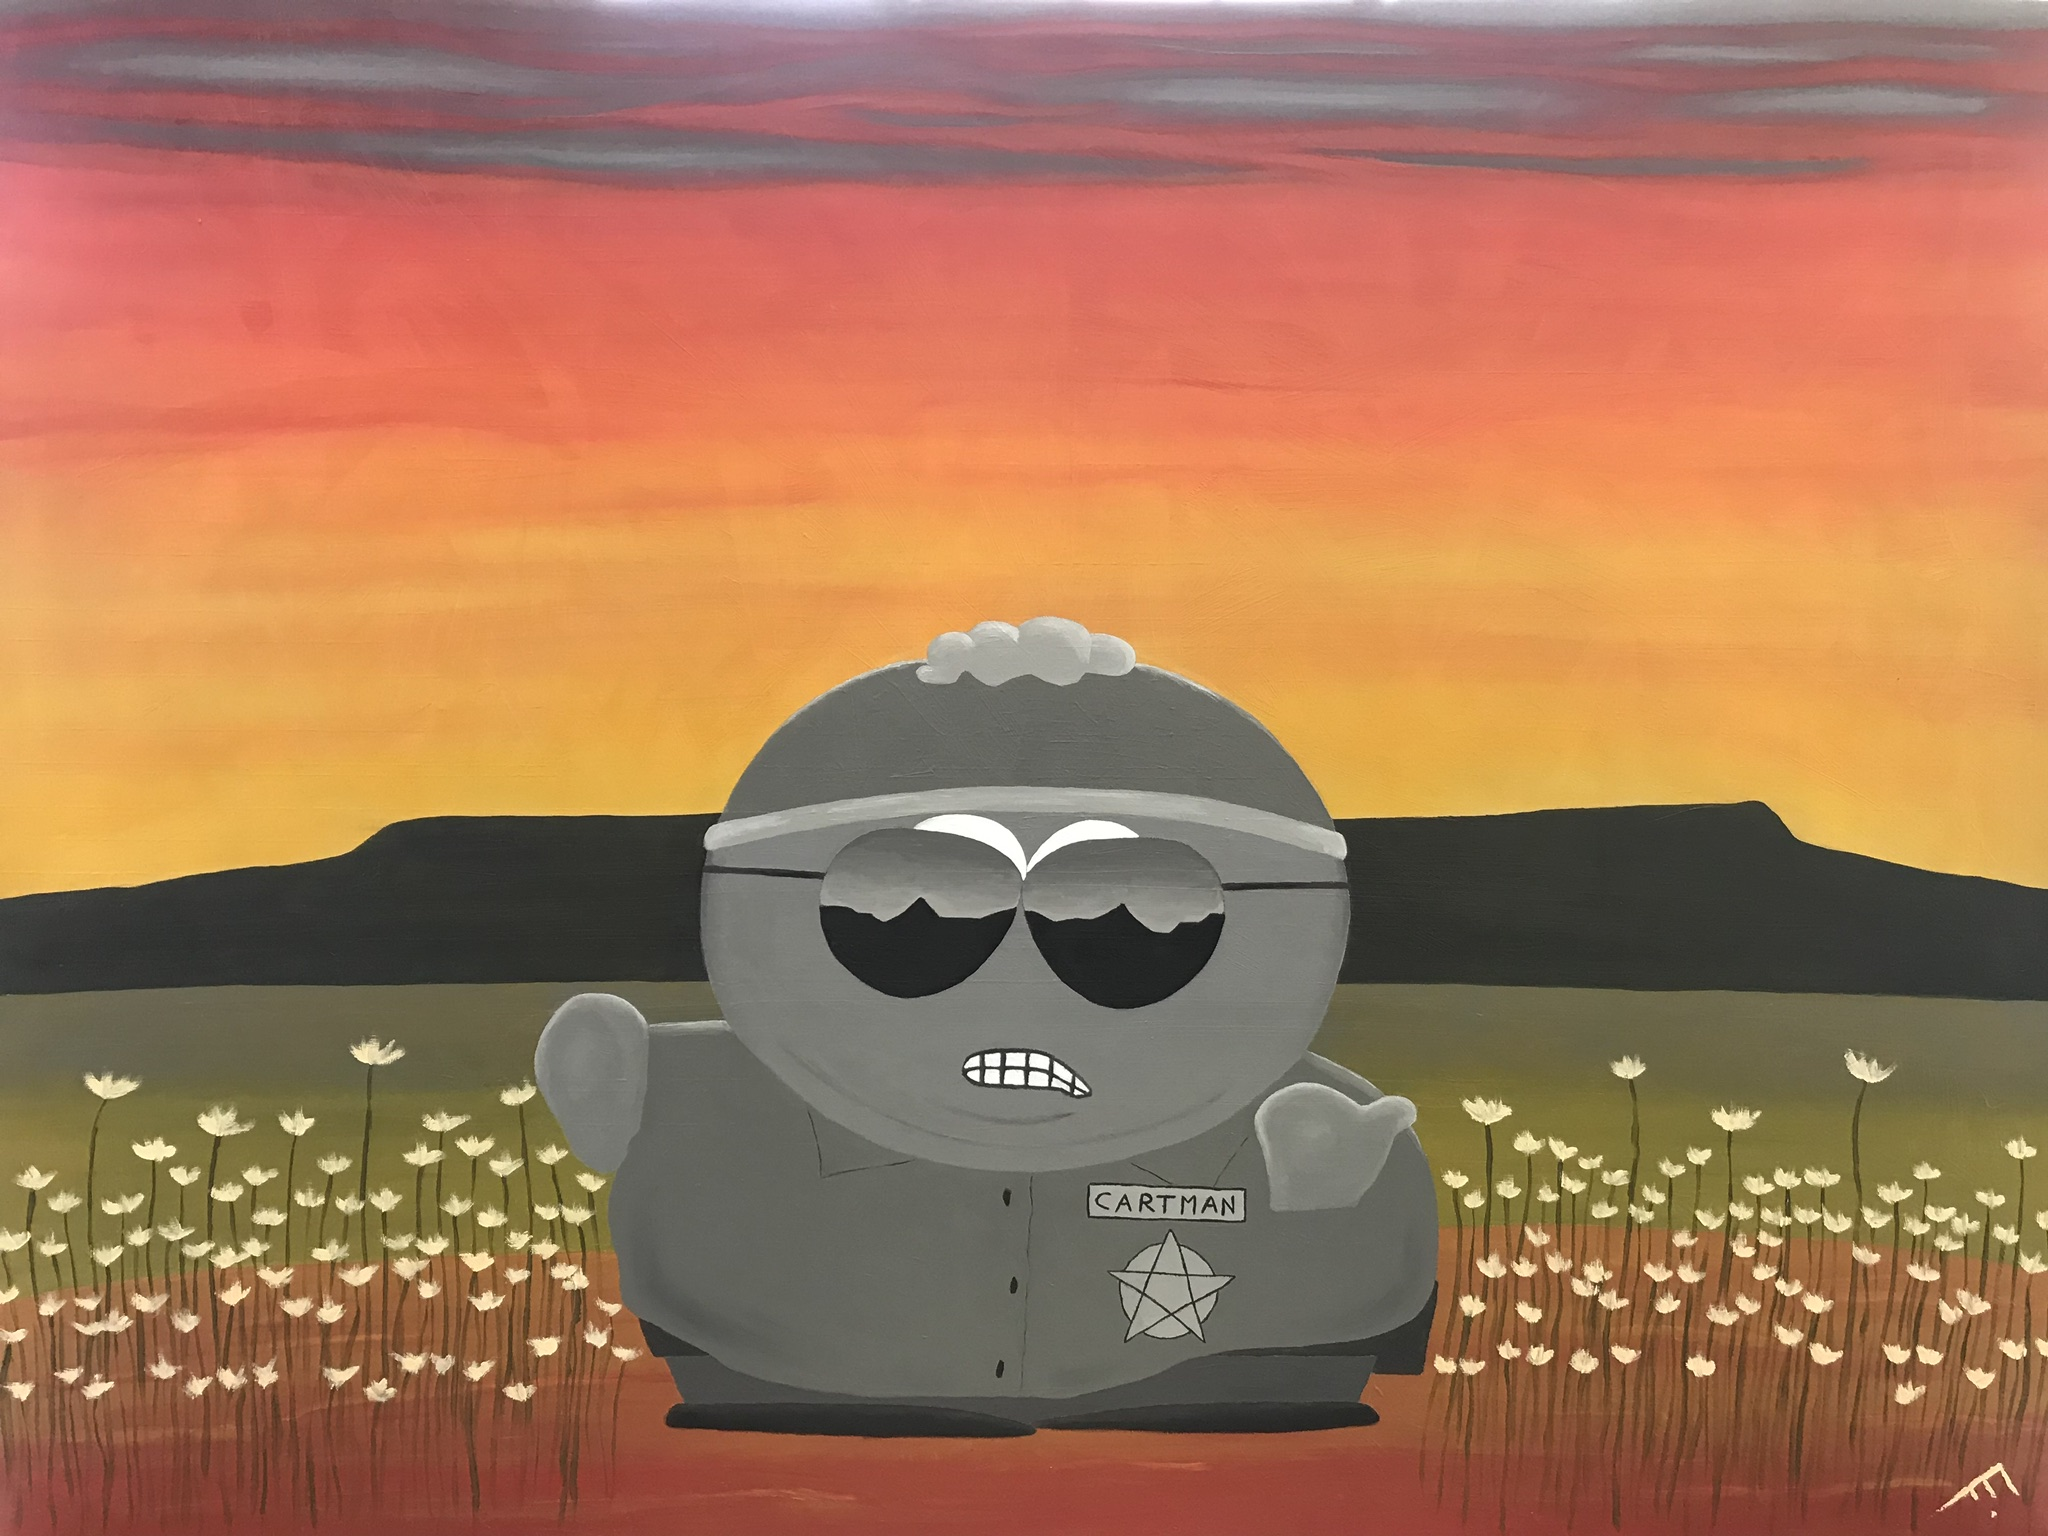 Officer Cartman artwork by Erika Leigh - art listed for sale on Artplode